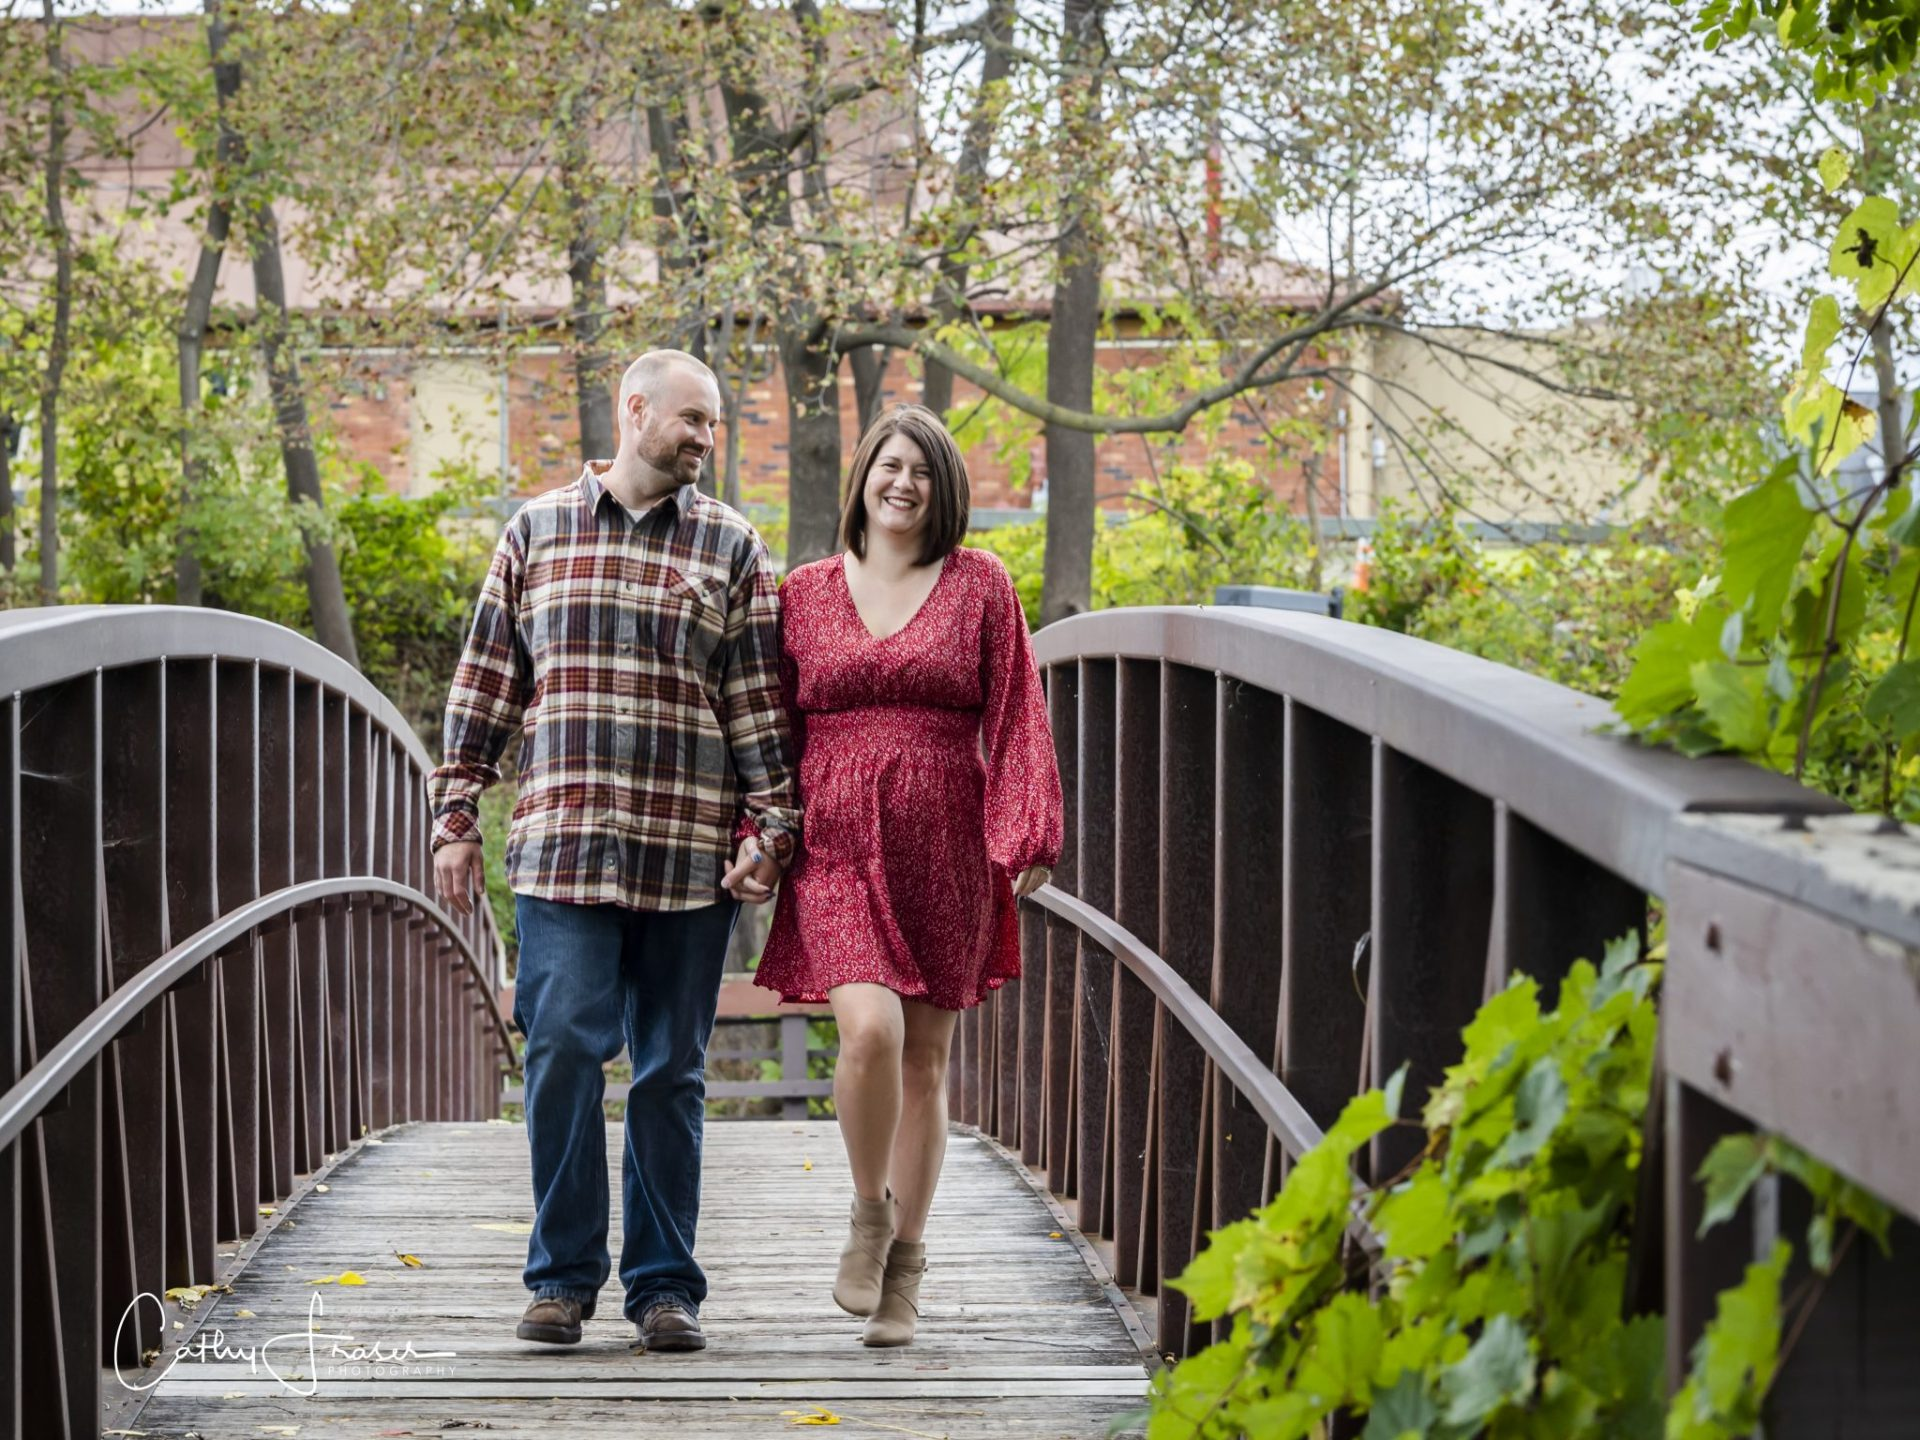 couple walking, Penn Yan, New York, natural light, husband and wife on footbridge, man in plaid flannel, jeans, woman in red dress